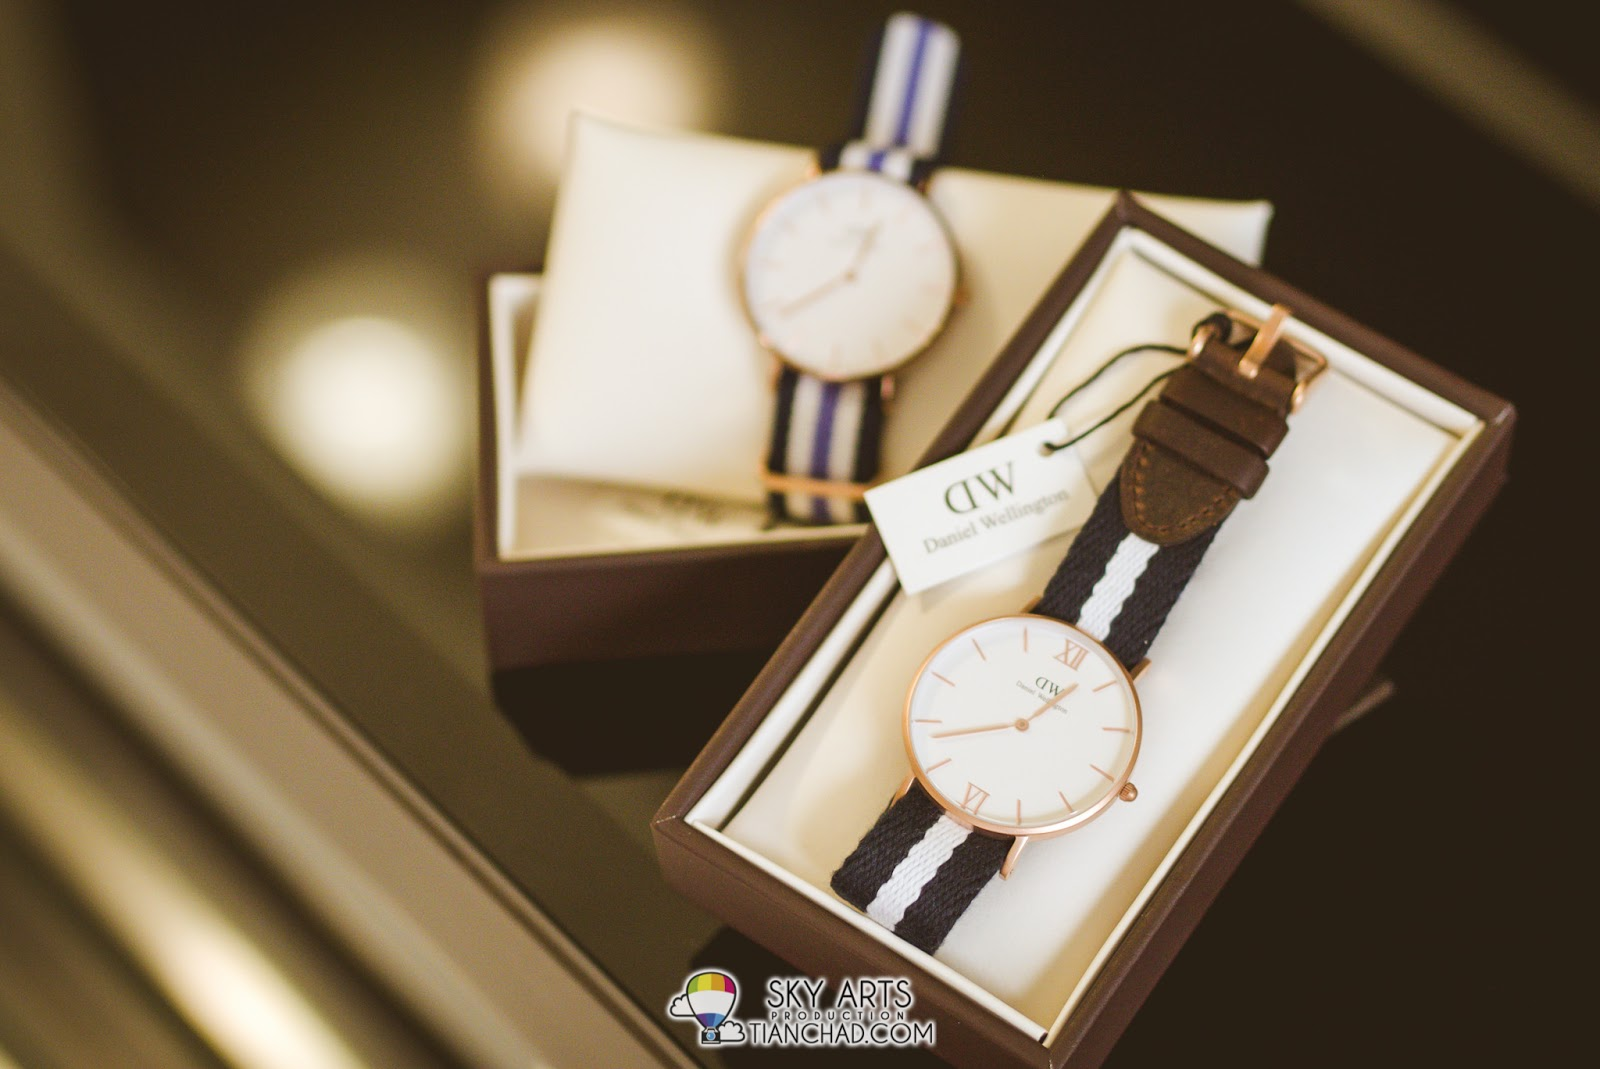 Daniel Wellington Watches in Malaysia with Exclusive 15% Promo/Discoun